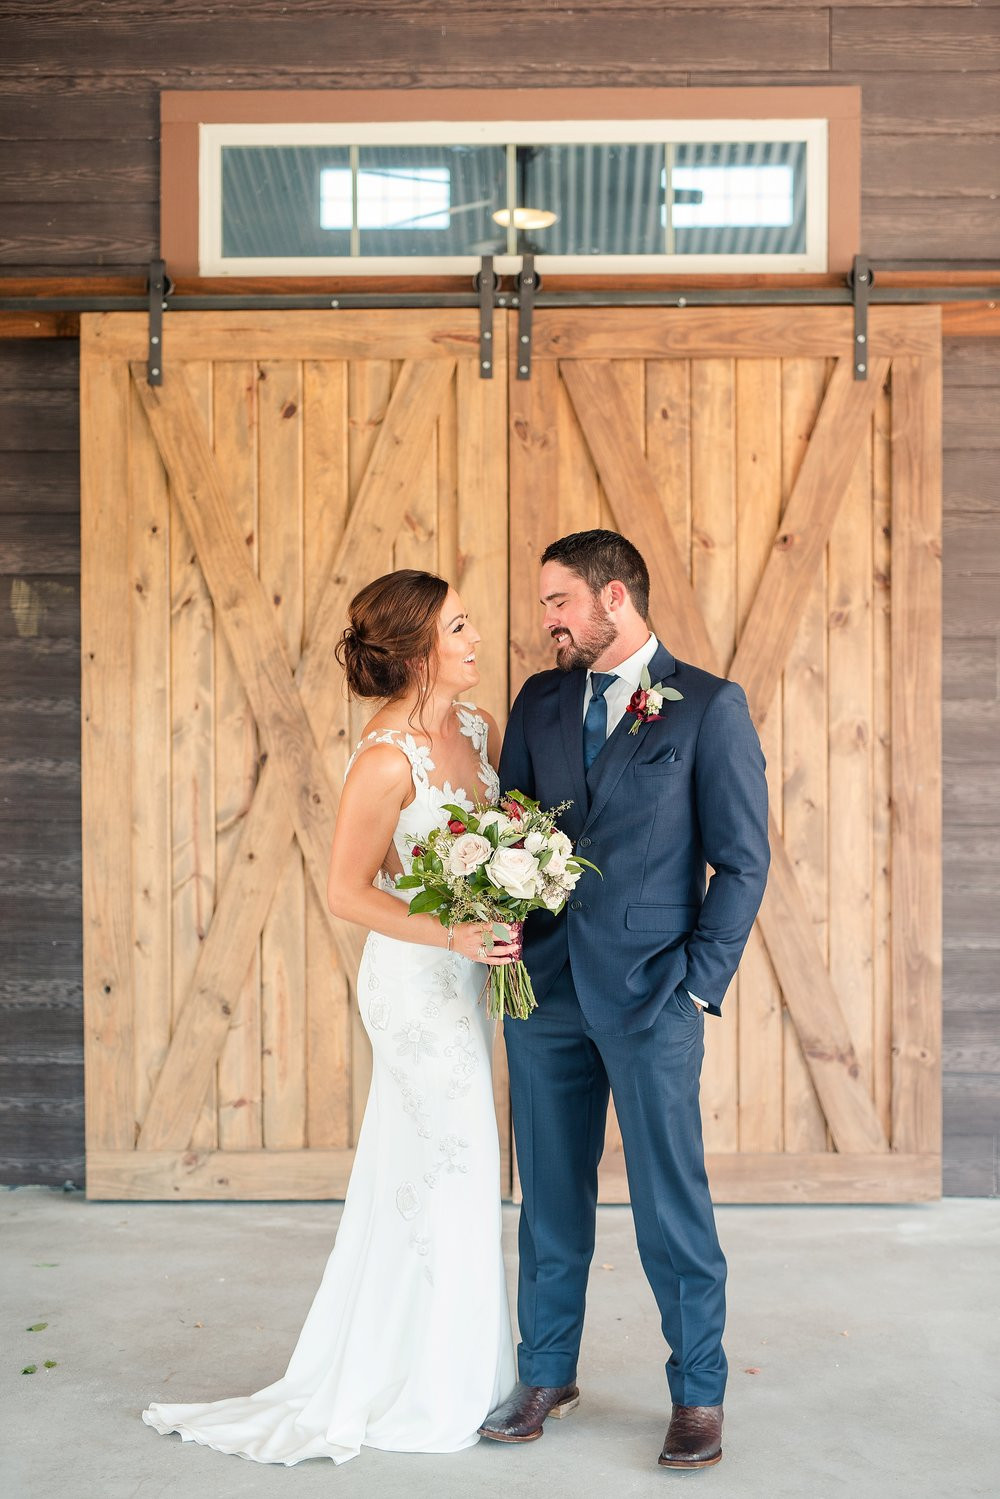 The couple looks lovingly at each other in front of Peach Creek's iconic barn doors.